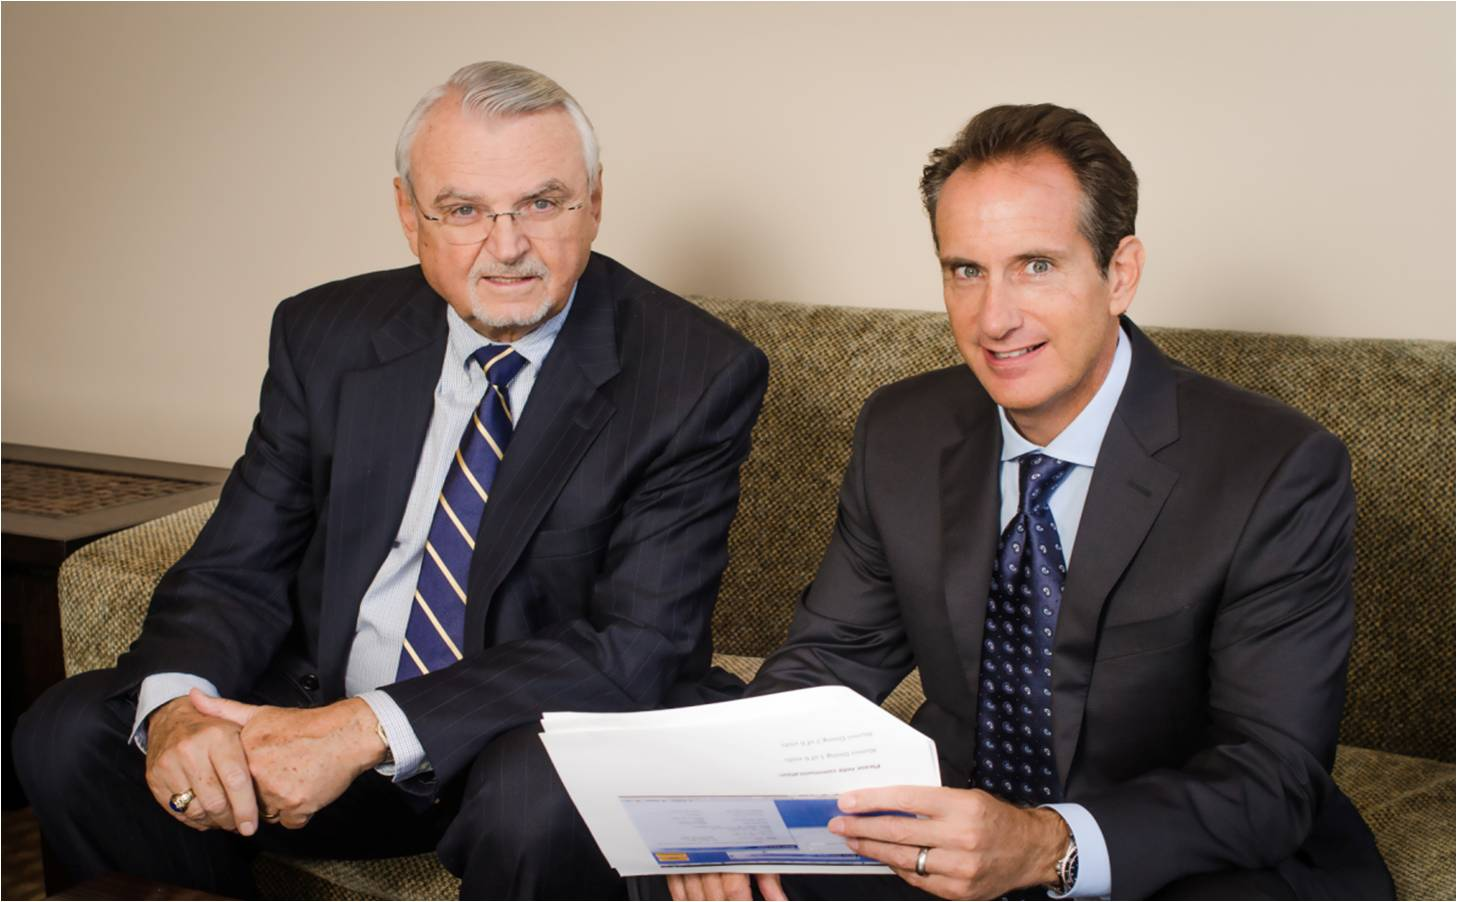 Michael Wood, Principal & Stephen Metter, Chief Executive Officer & Principal